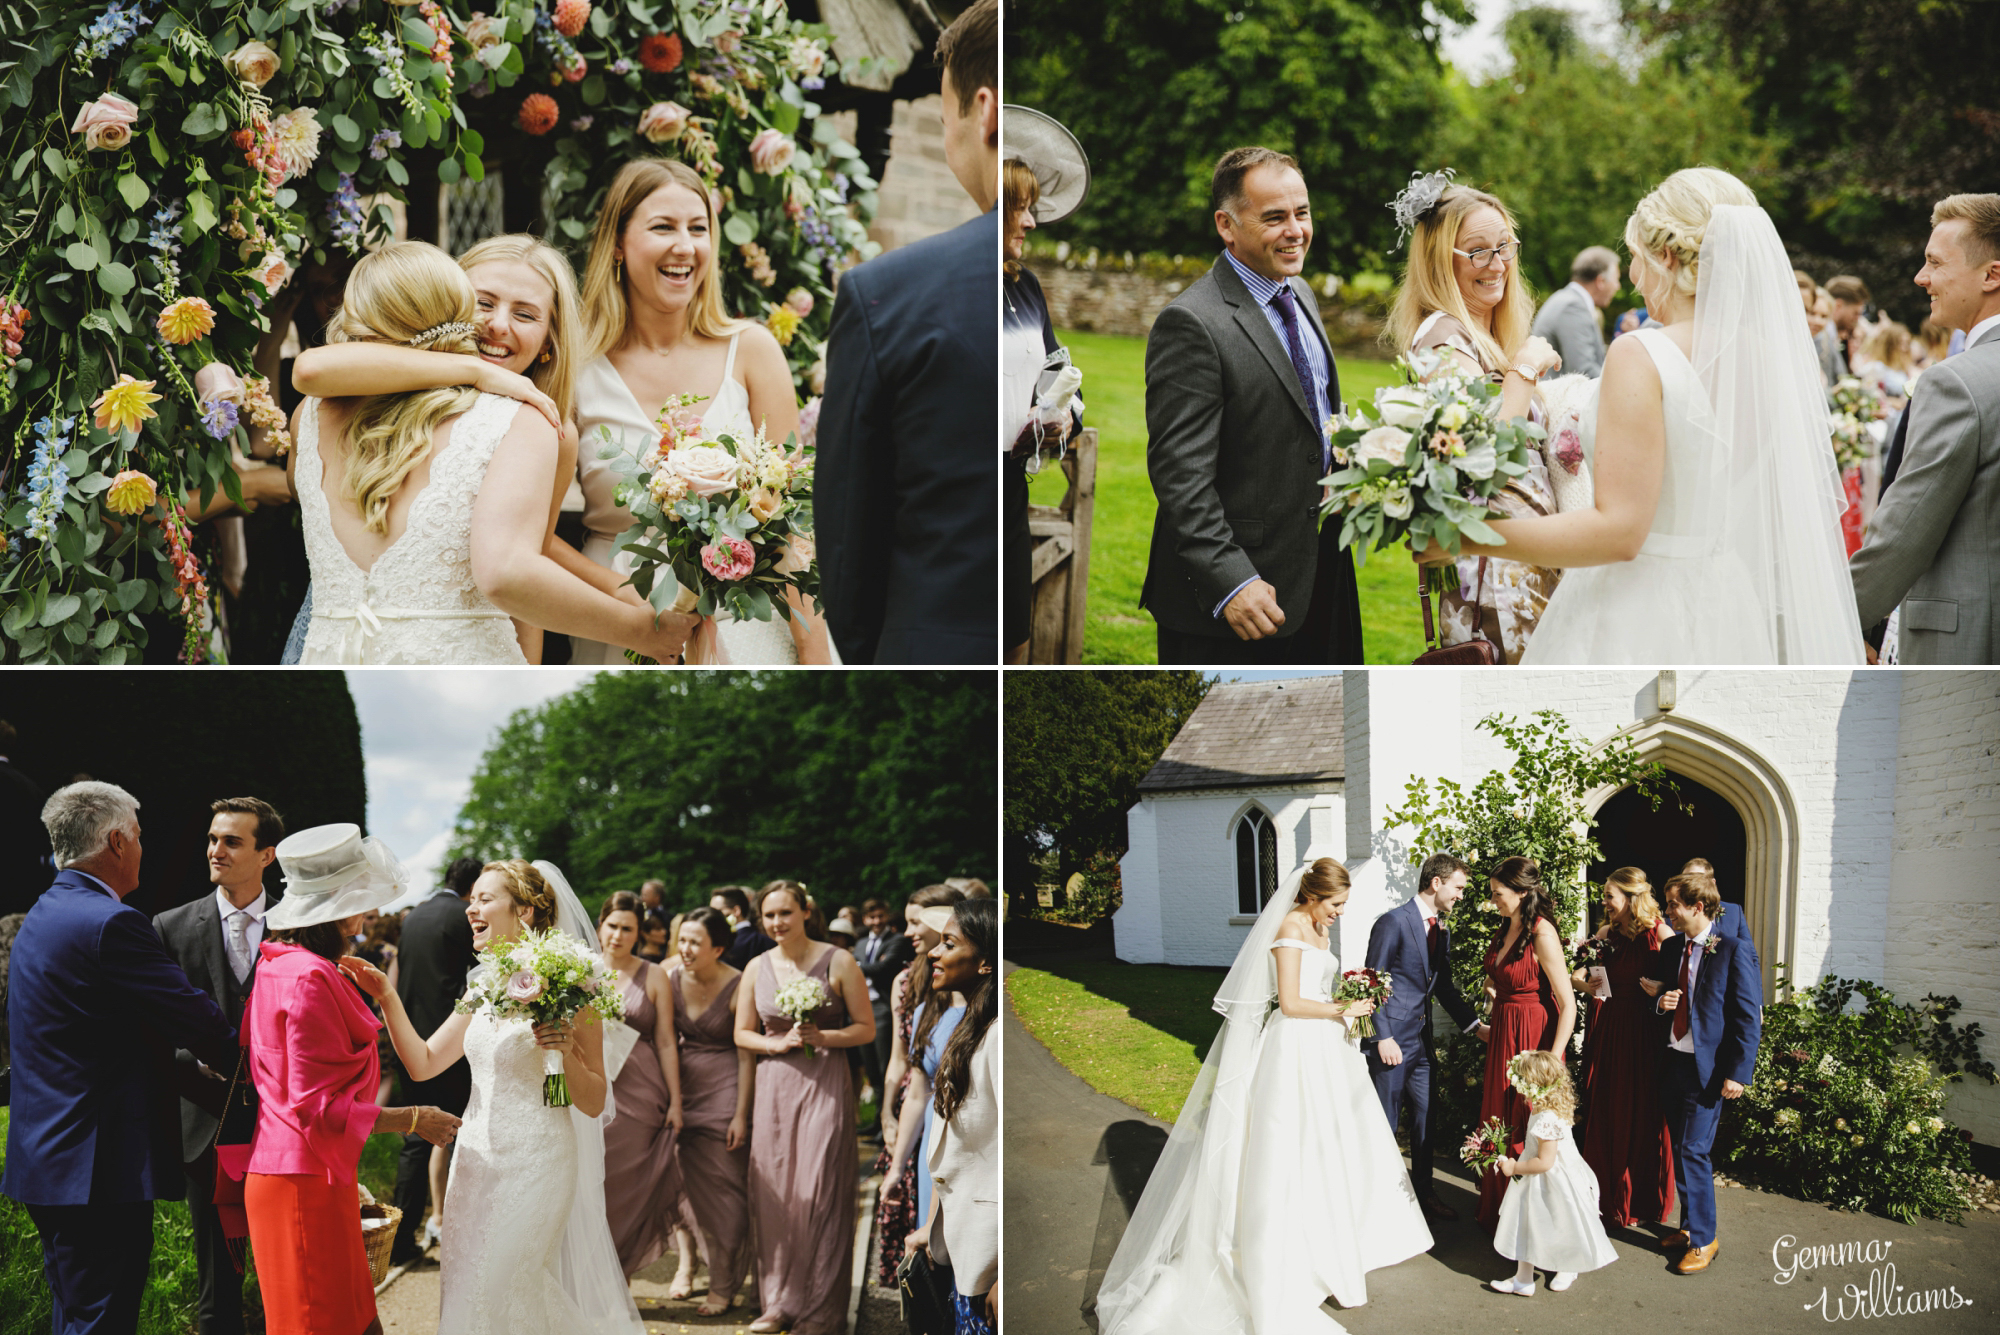 GemmaWilliamsPhotography_Weddings2018_0418.jpg